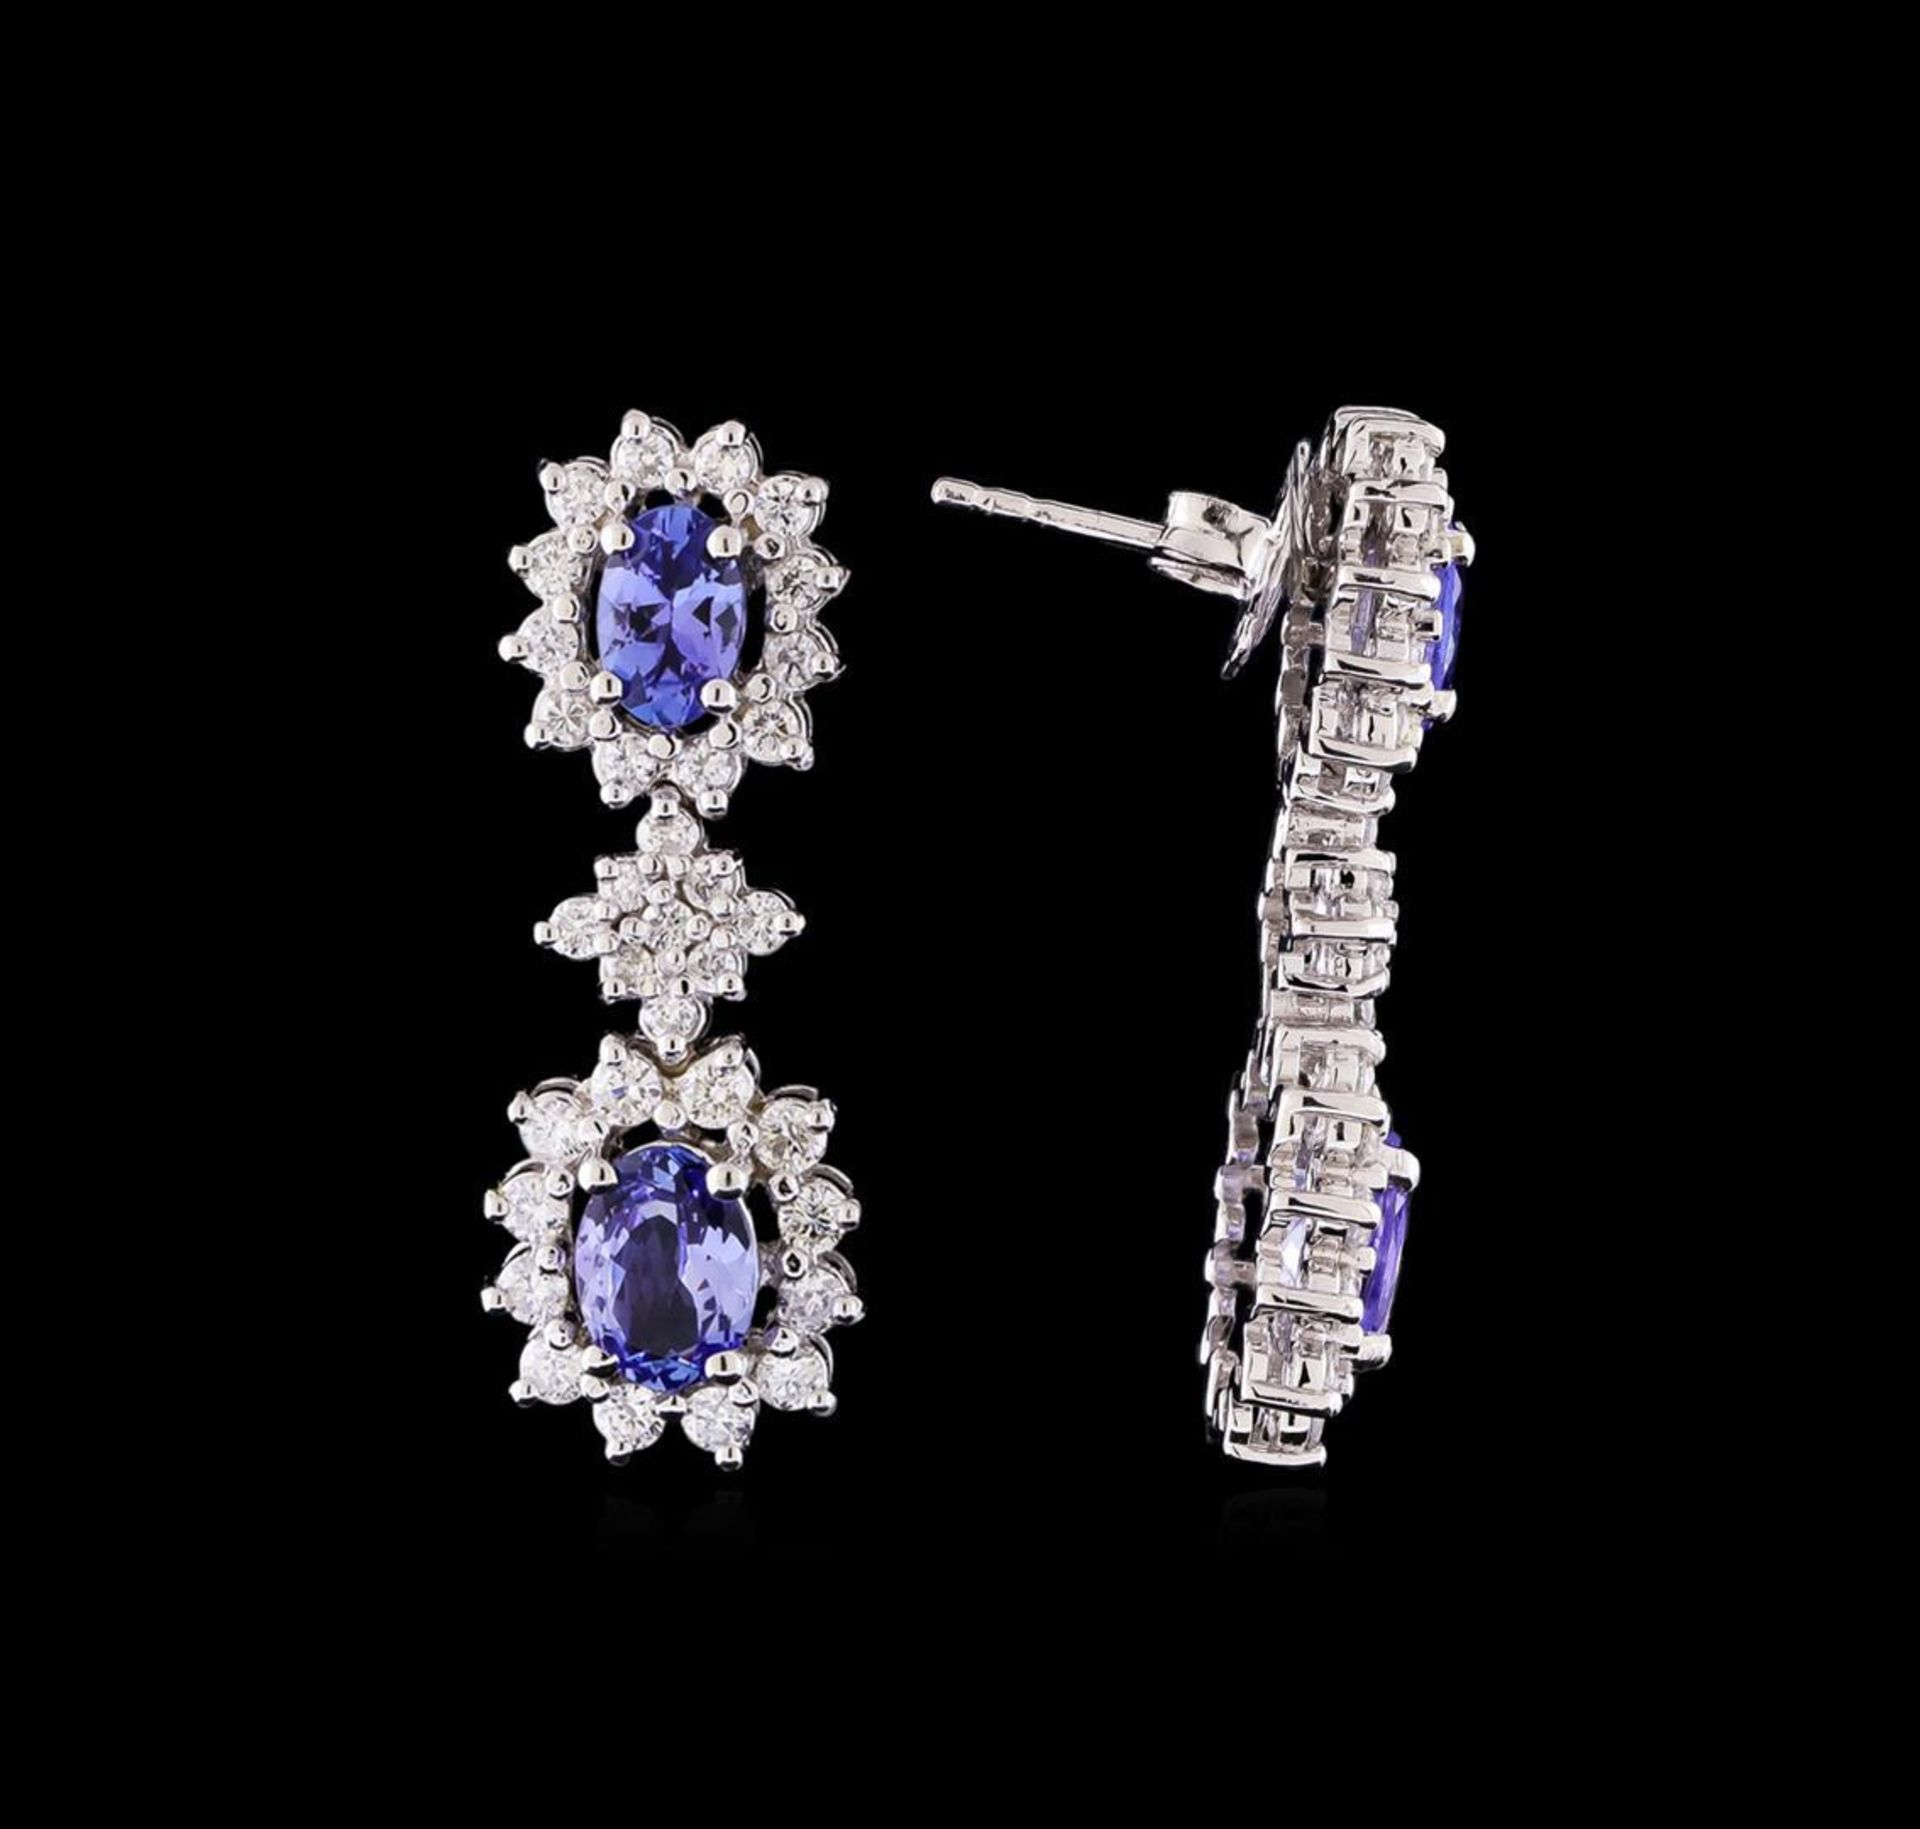 2.35 ctw Tanzanite and Diamond Earrings - 14KT White Gold - Image 2 of 4